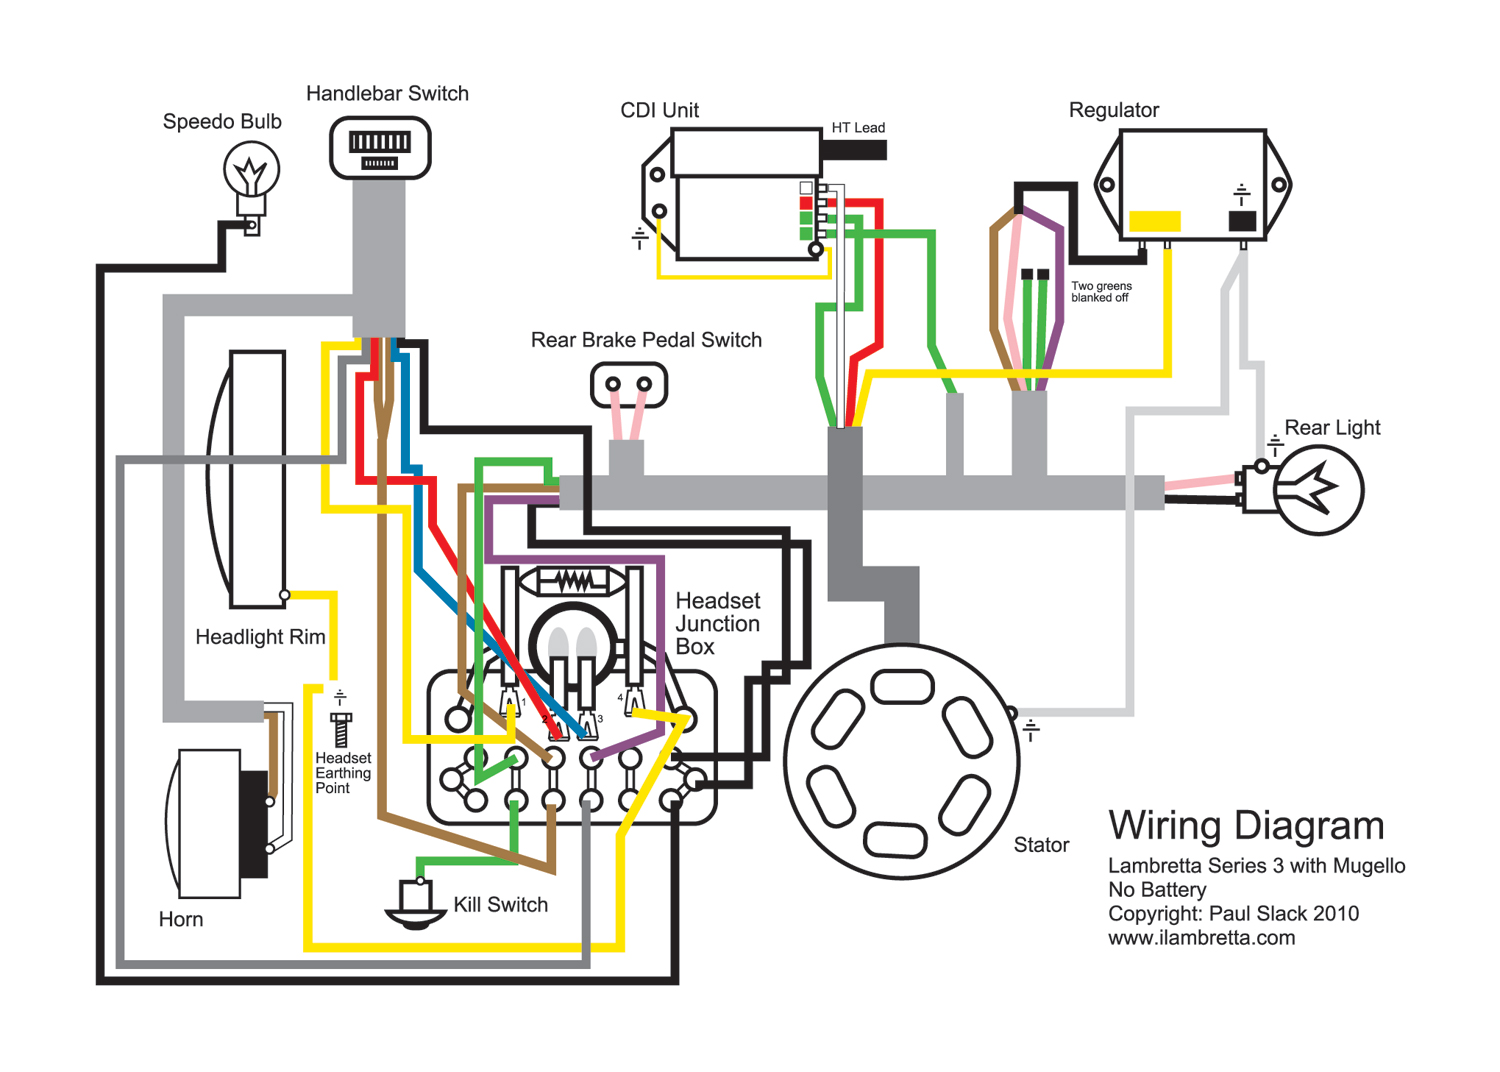 Unusual Hanma Cdi Box Wiring Diagram Pictures Inspiration ...